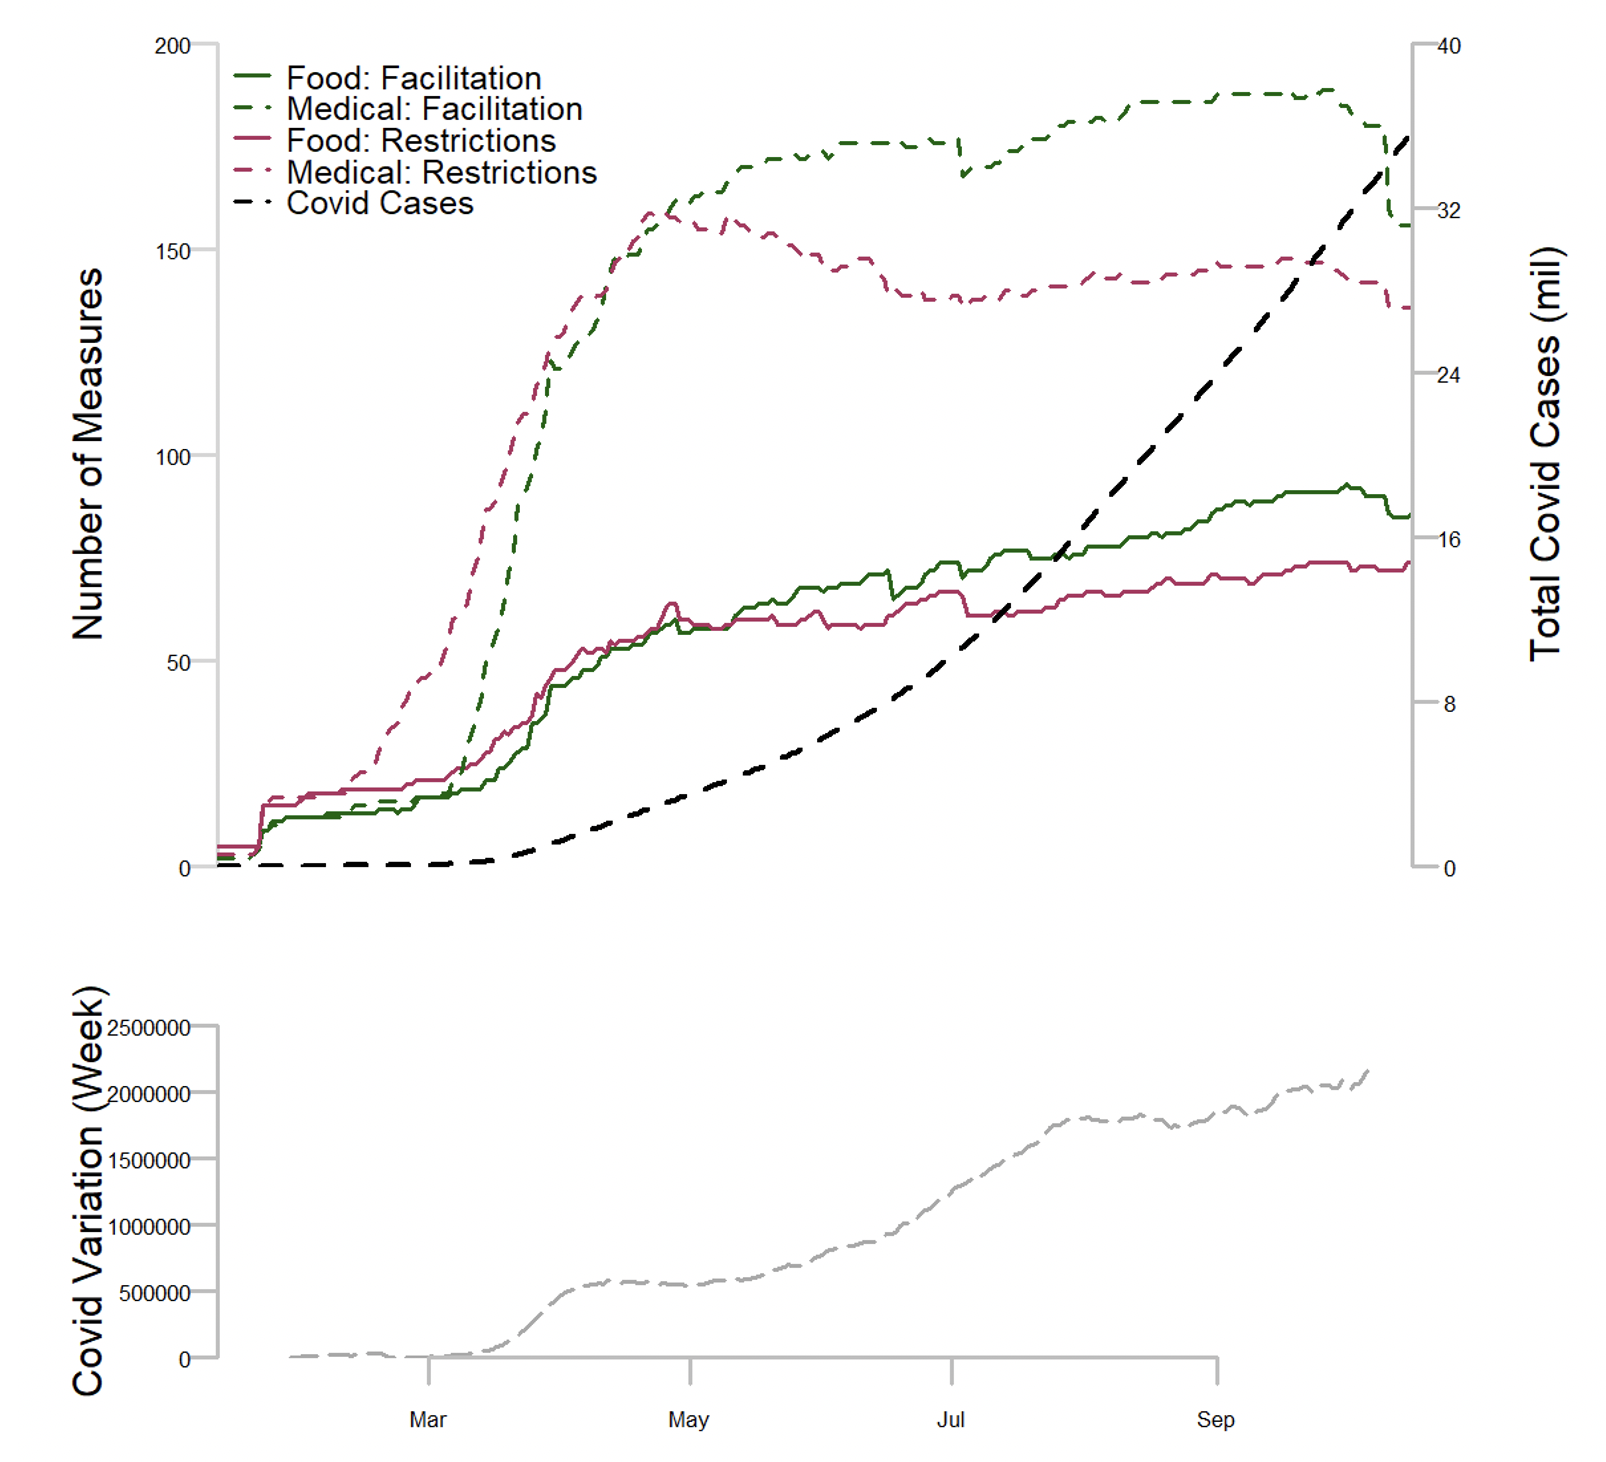 Trade policy responses to the COVID-19 pandemic: A new dataset 1